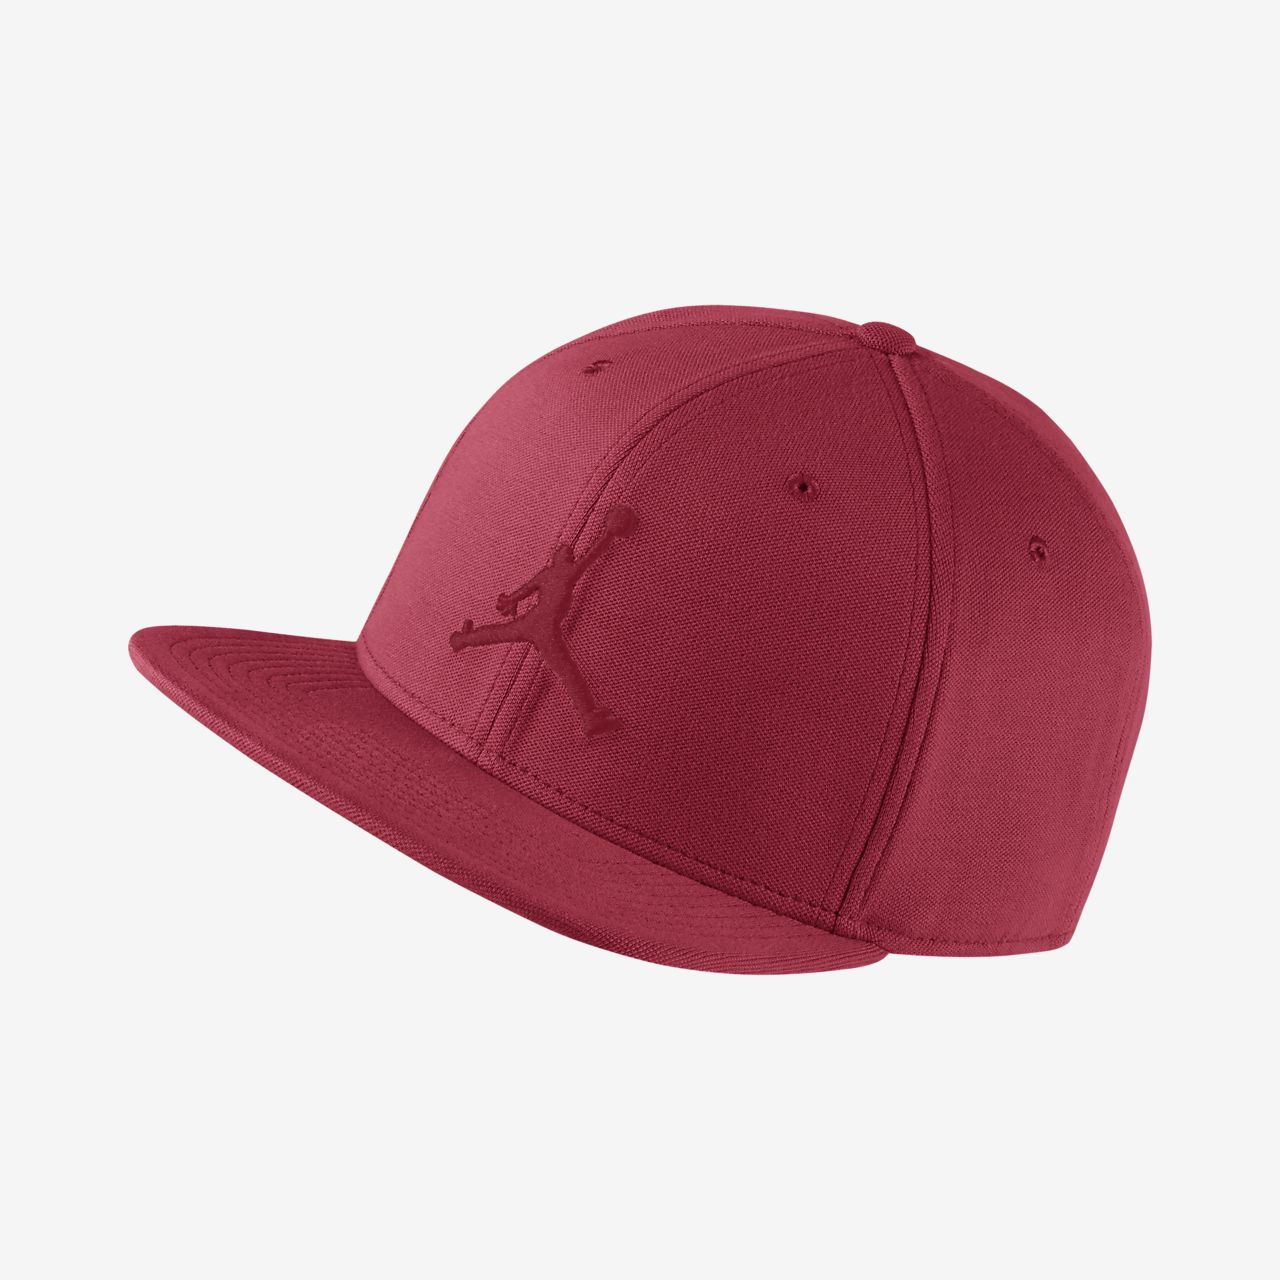 25abda71716 Jordan Jumpman Snapback Adjustable Hat. Nike.com GB